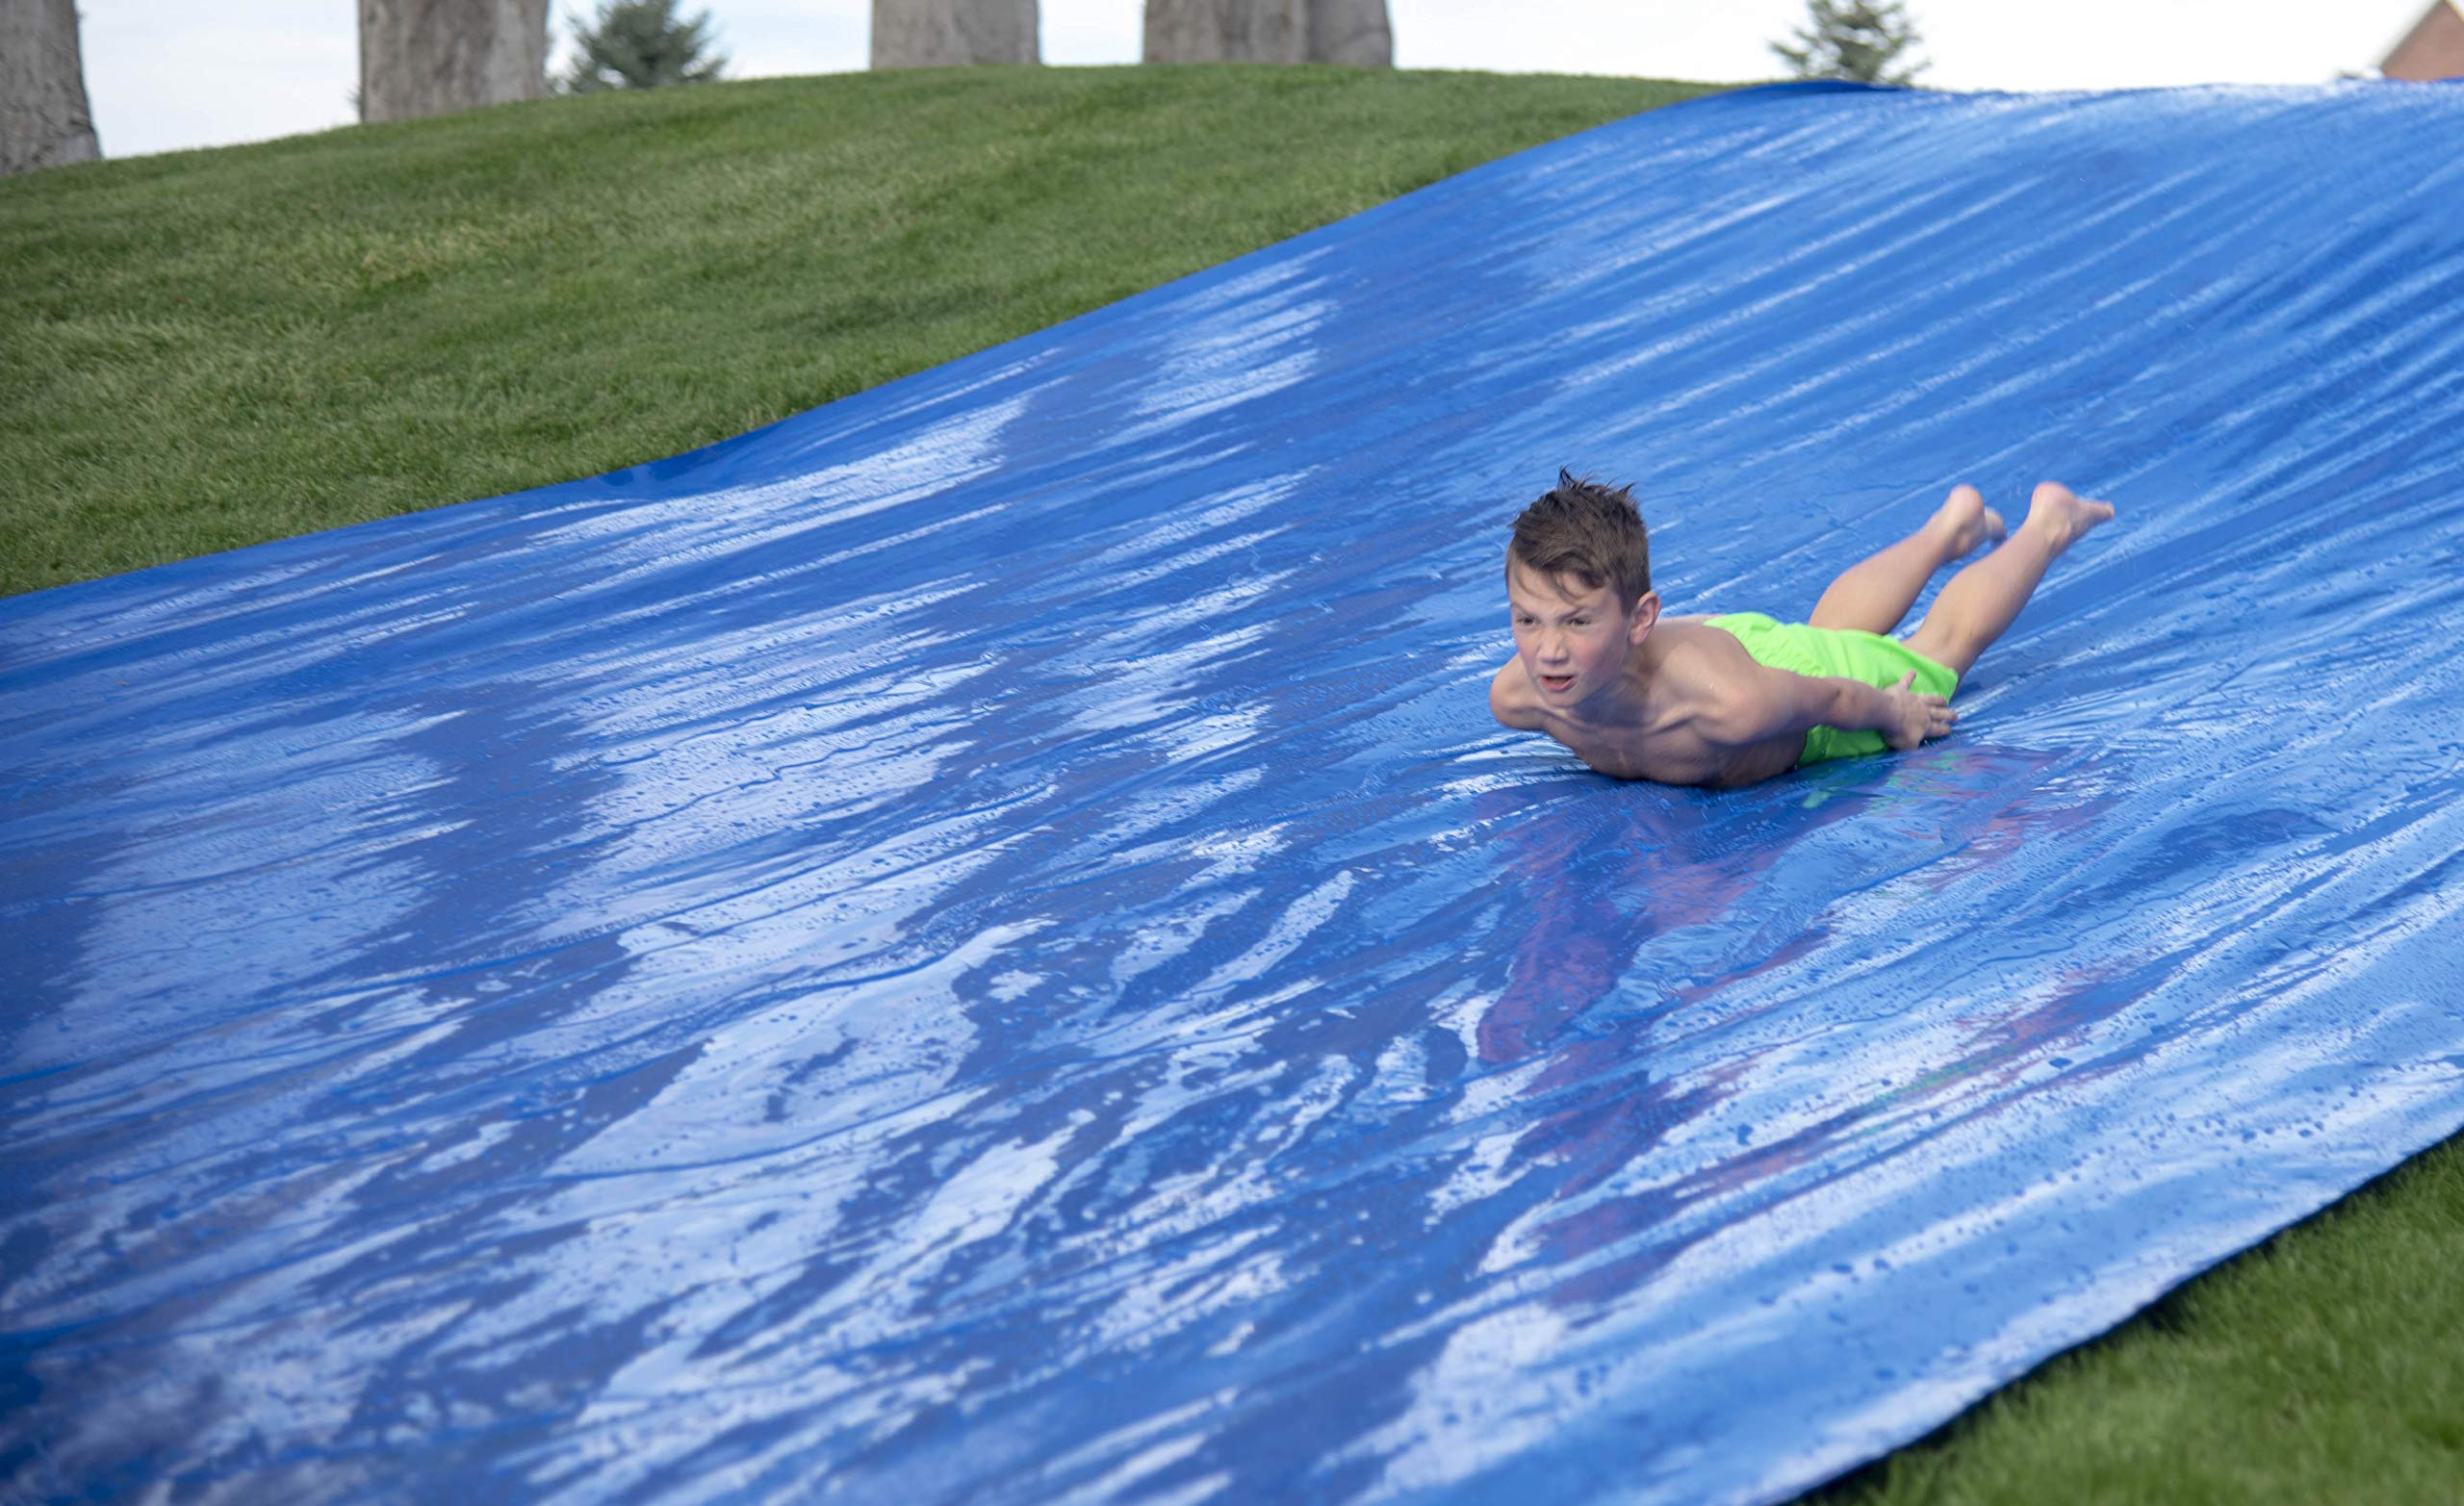 Squirrel Products Big Freaking Waterslide 75' x 12'- The Big One- Easy to Setup - No Exposed Stakes with Patented Concealed Connectors - Extra Thick to Prevent Rips & Tears by Squirrel Products (Image #5)